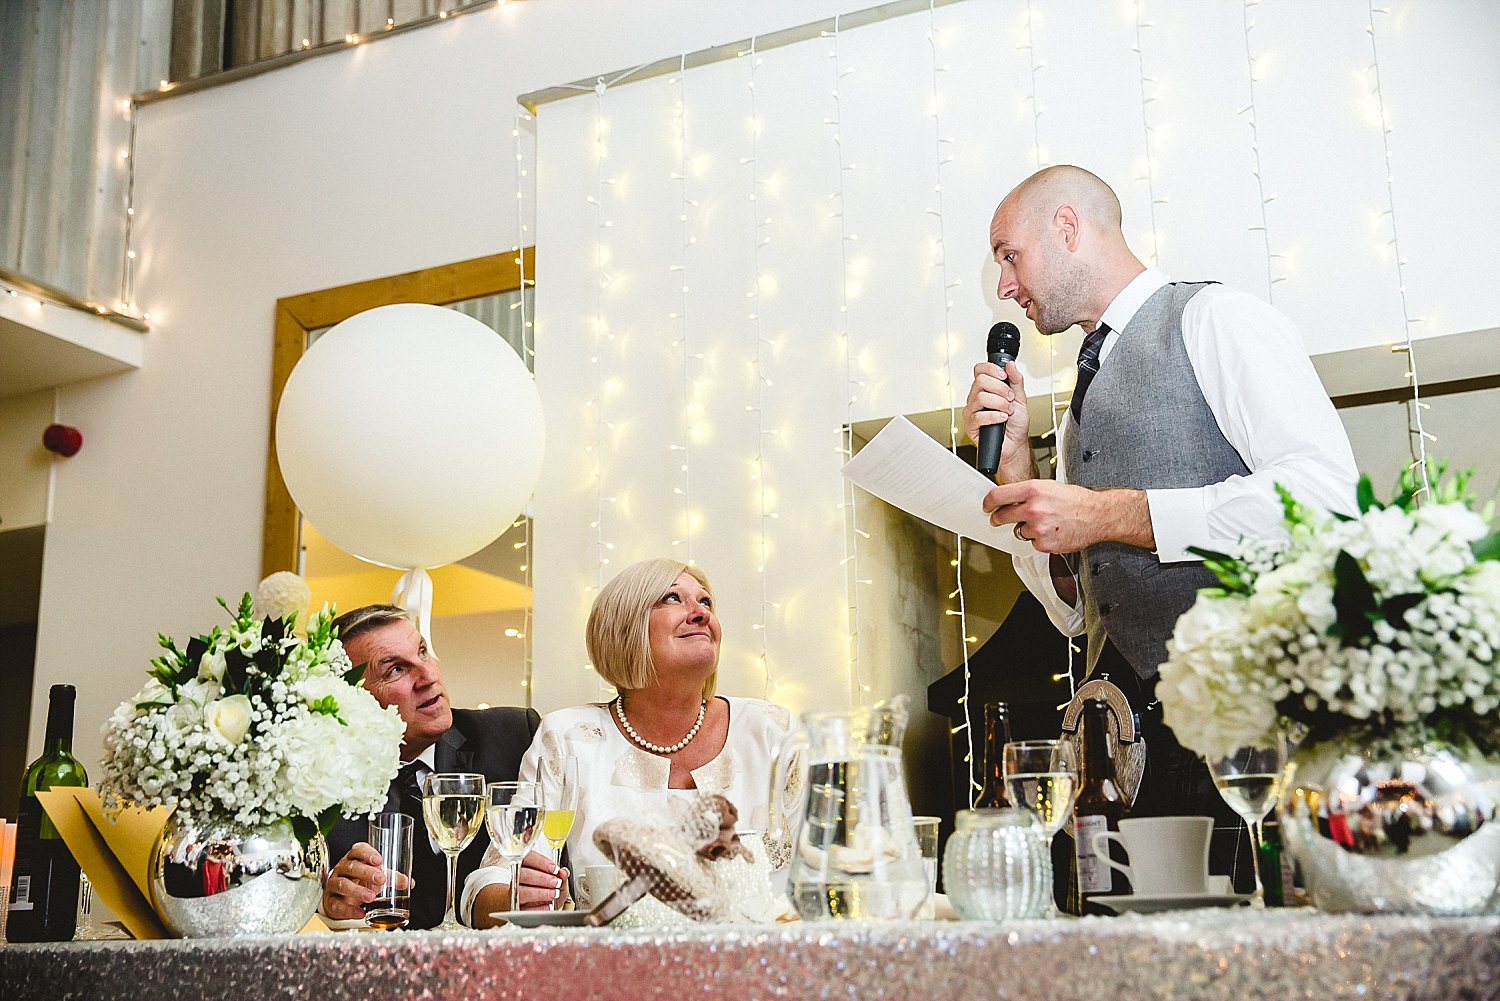 Houchins Essex Wedding Photographer - Groom's Speeches